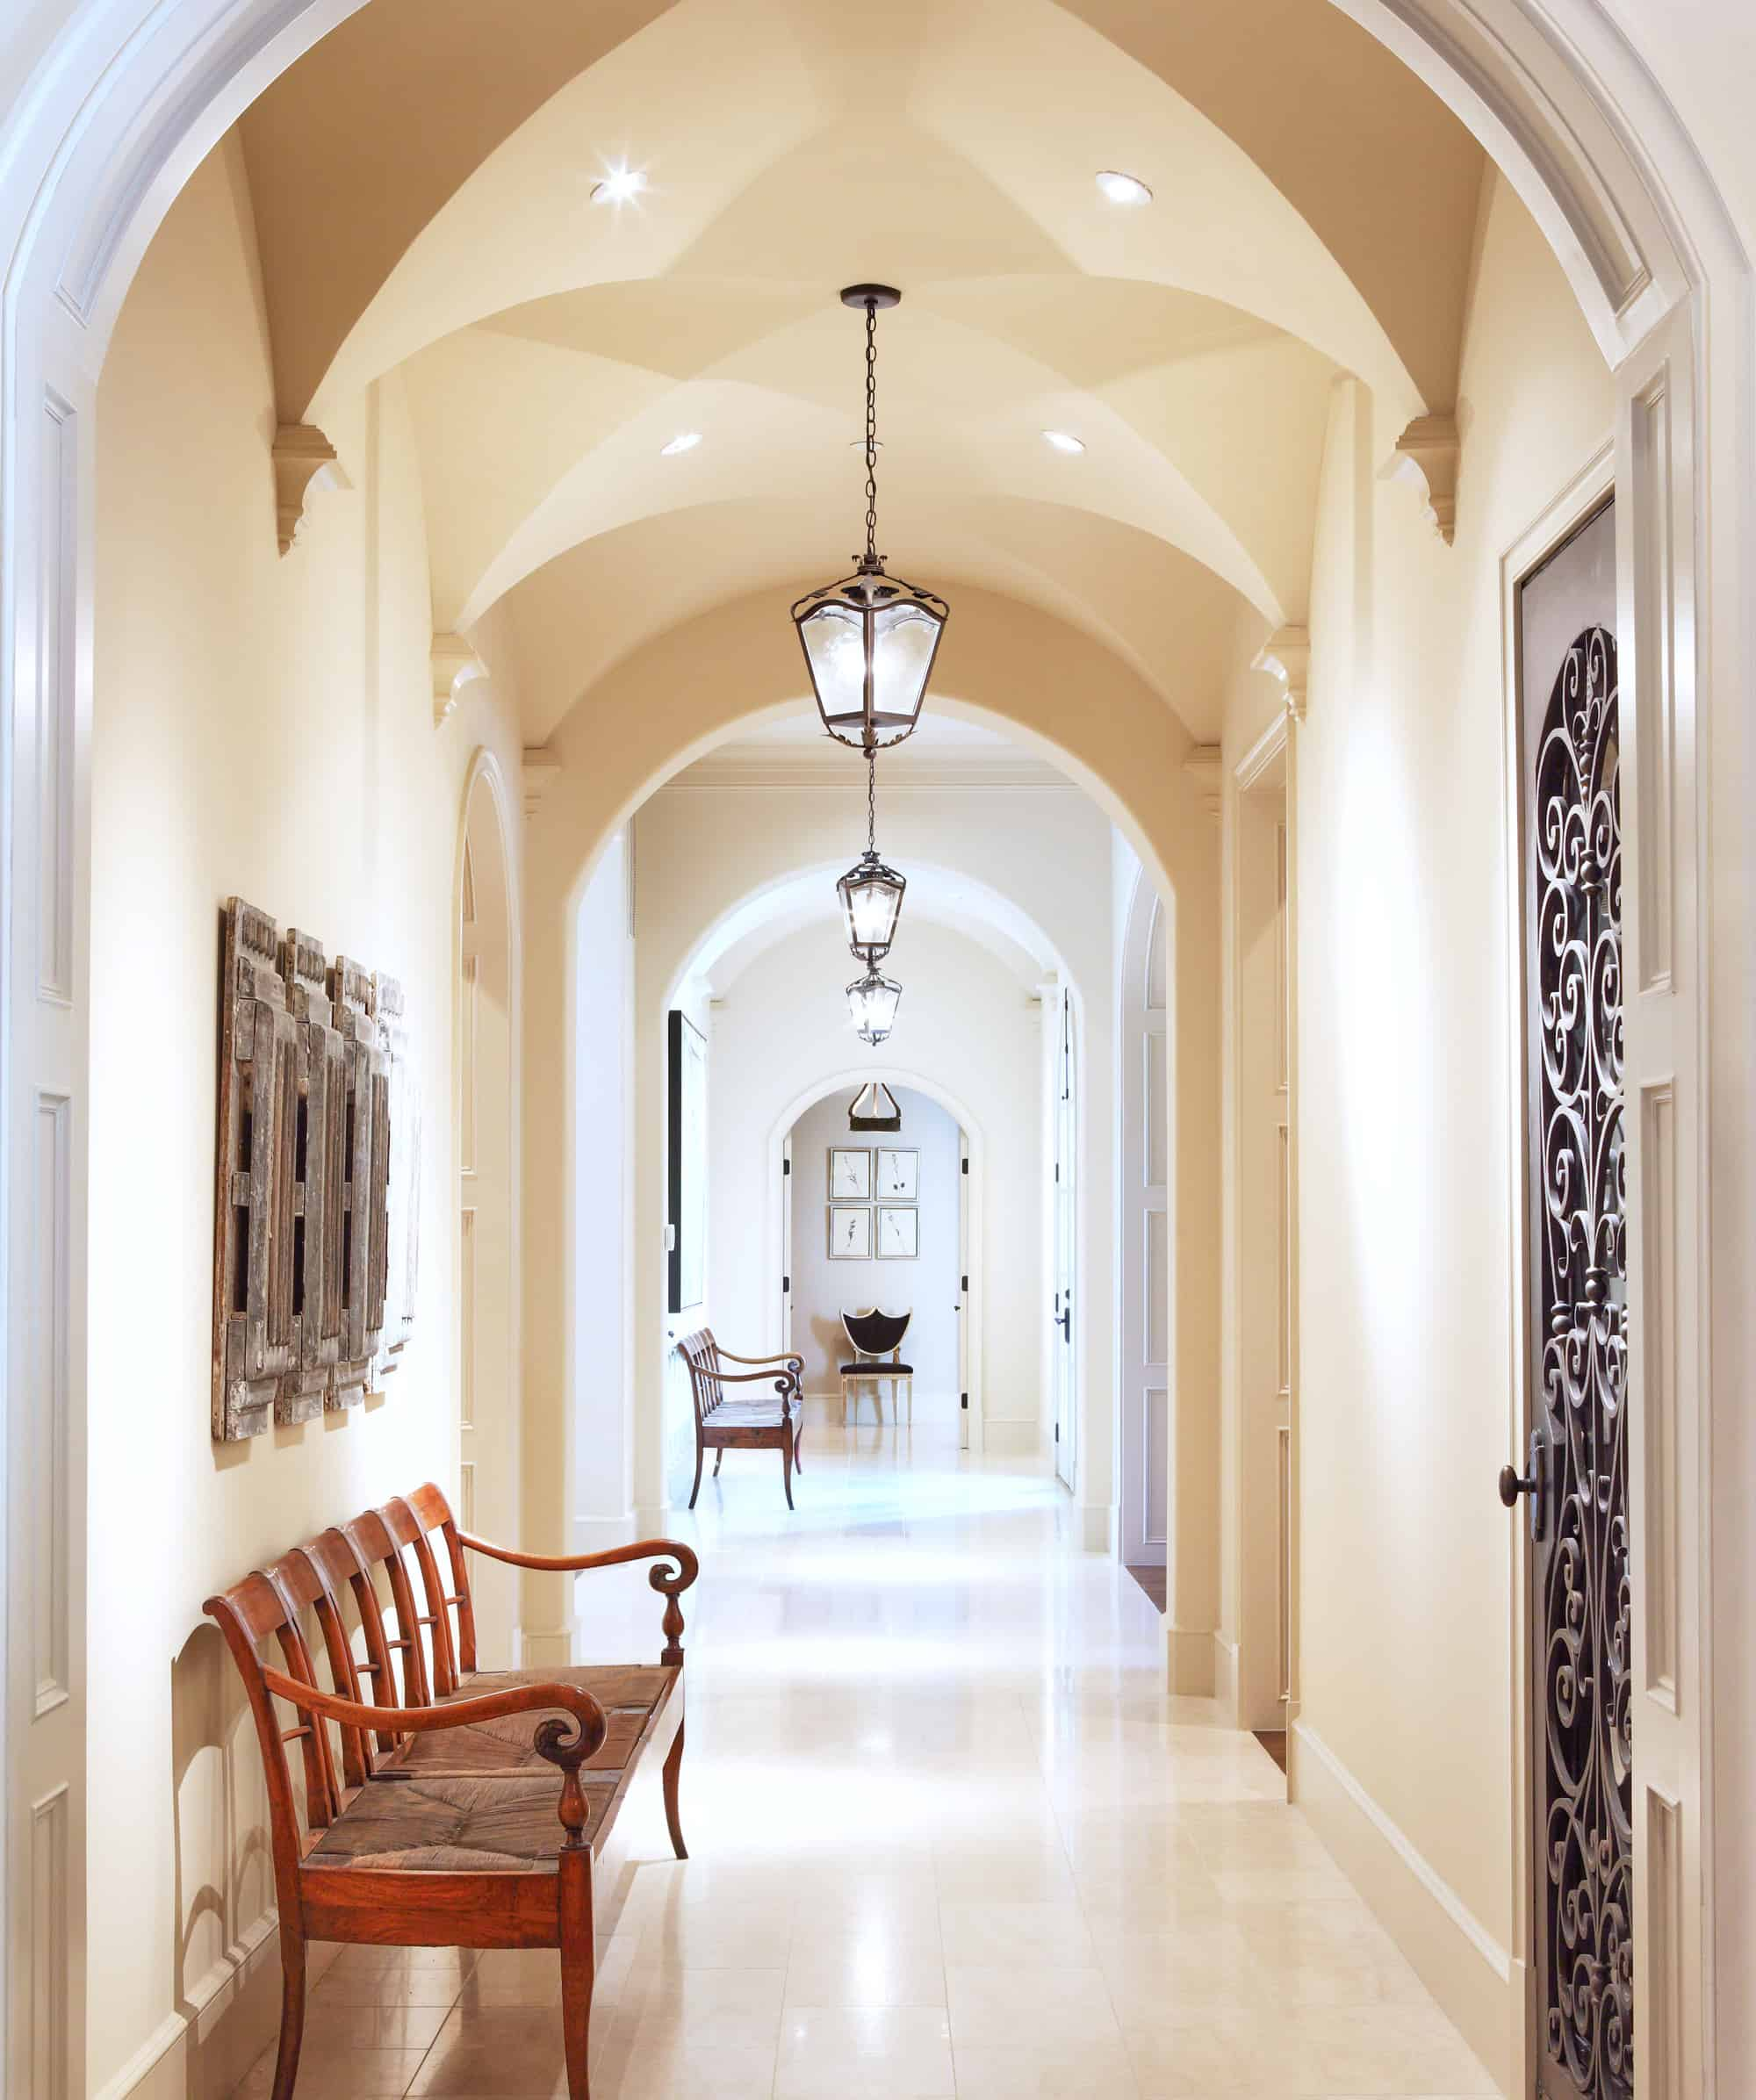 A long hallway with tall ceilings and decorations